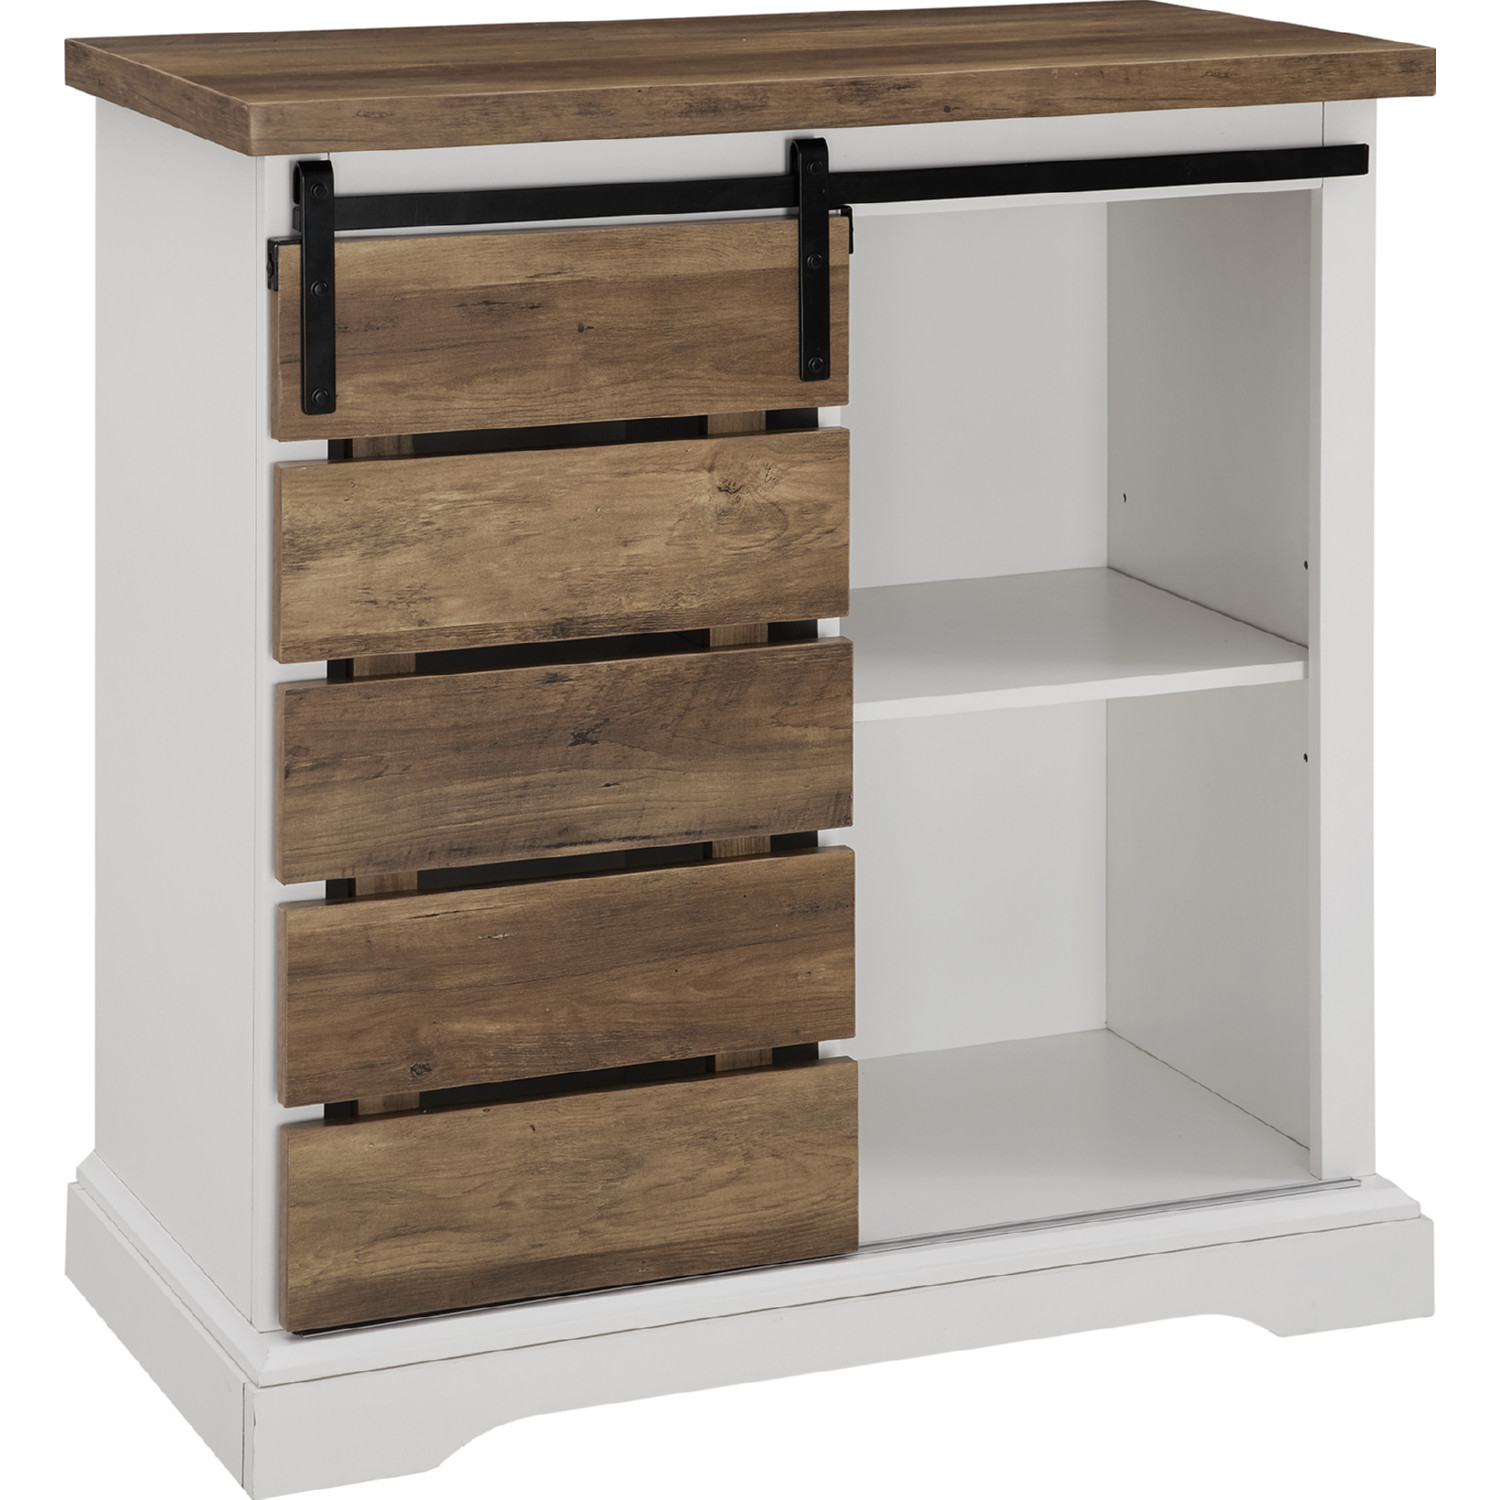 32 Rustic Farmhouse Tv Stand In Solid White Rustic Oak By Walker Edison